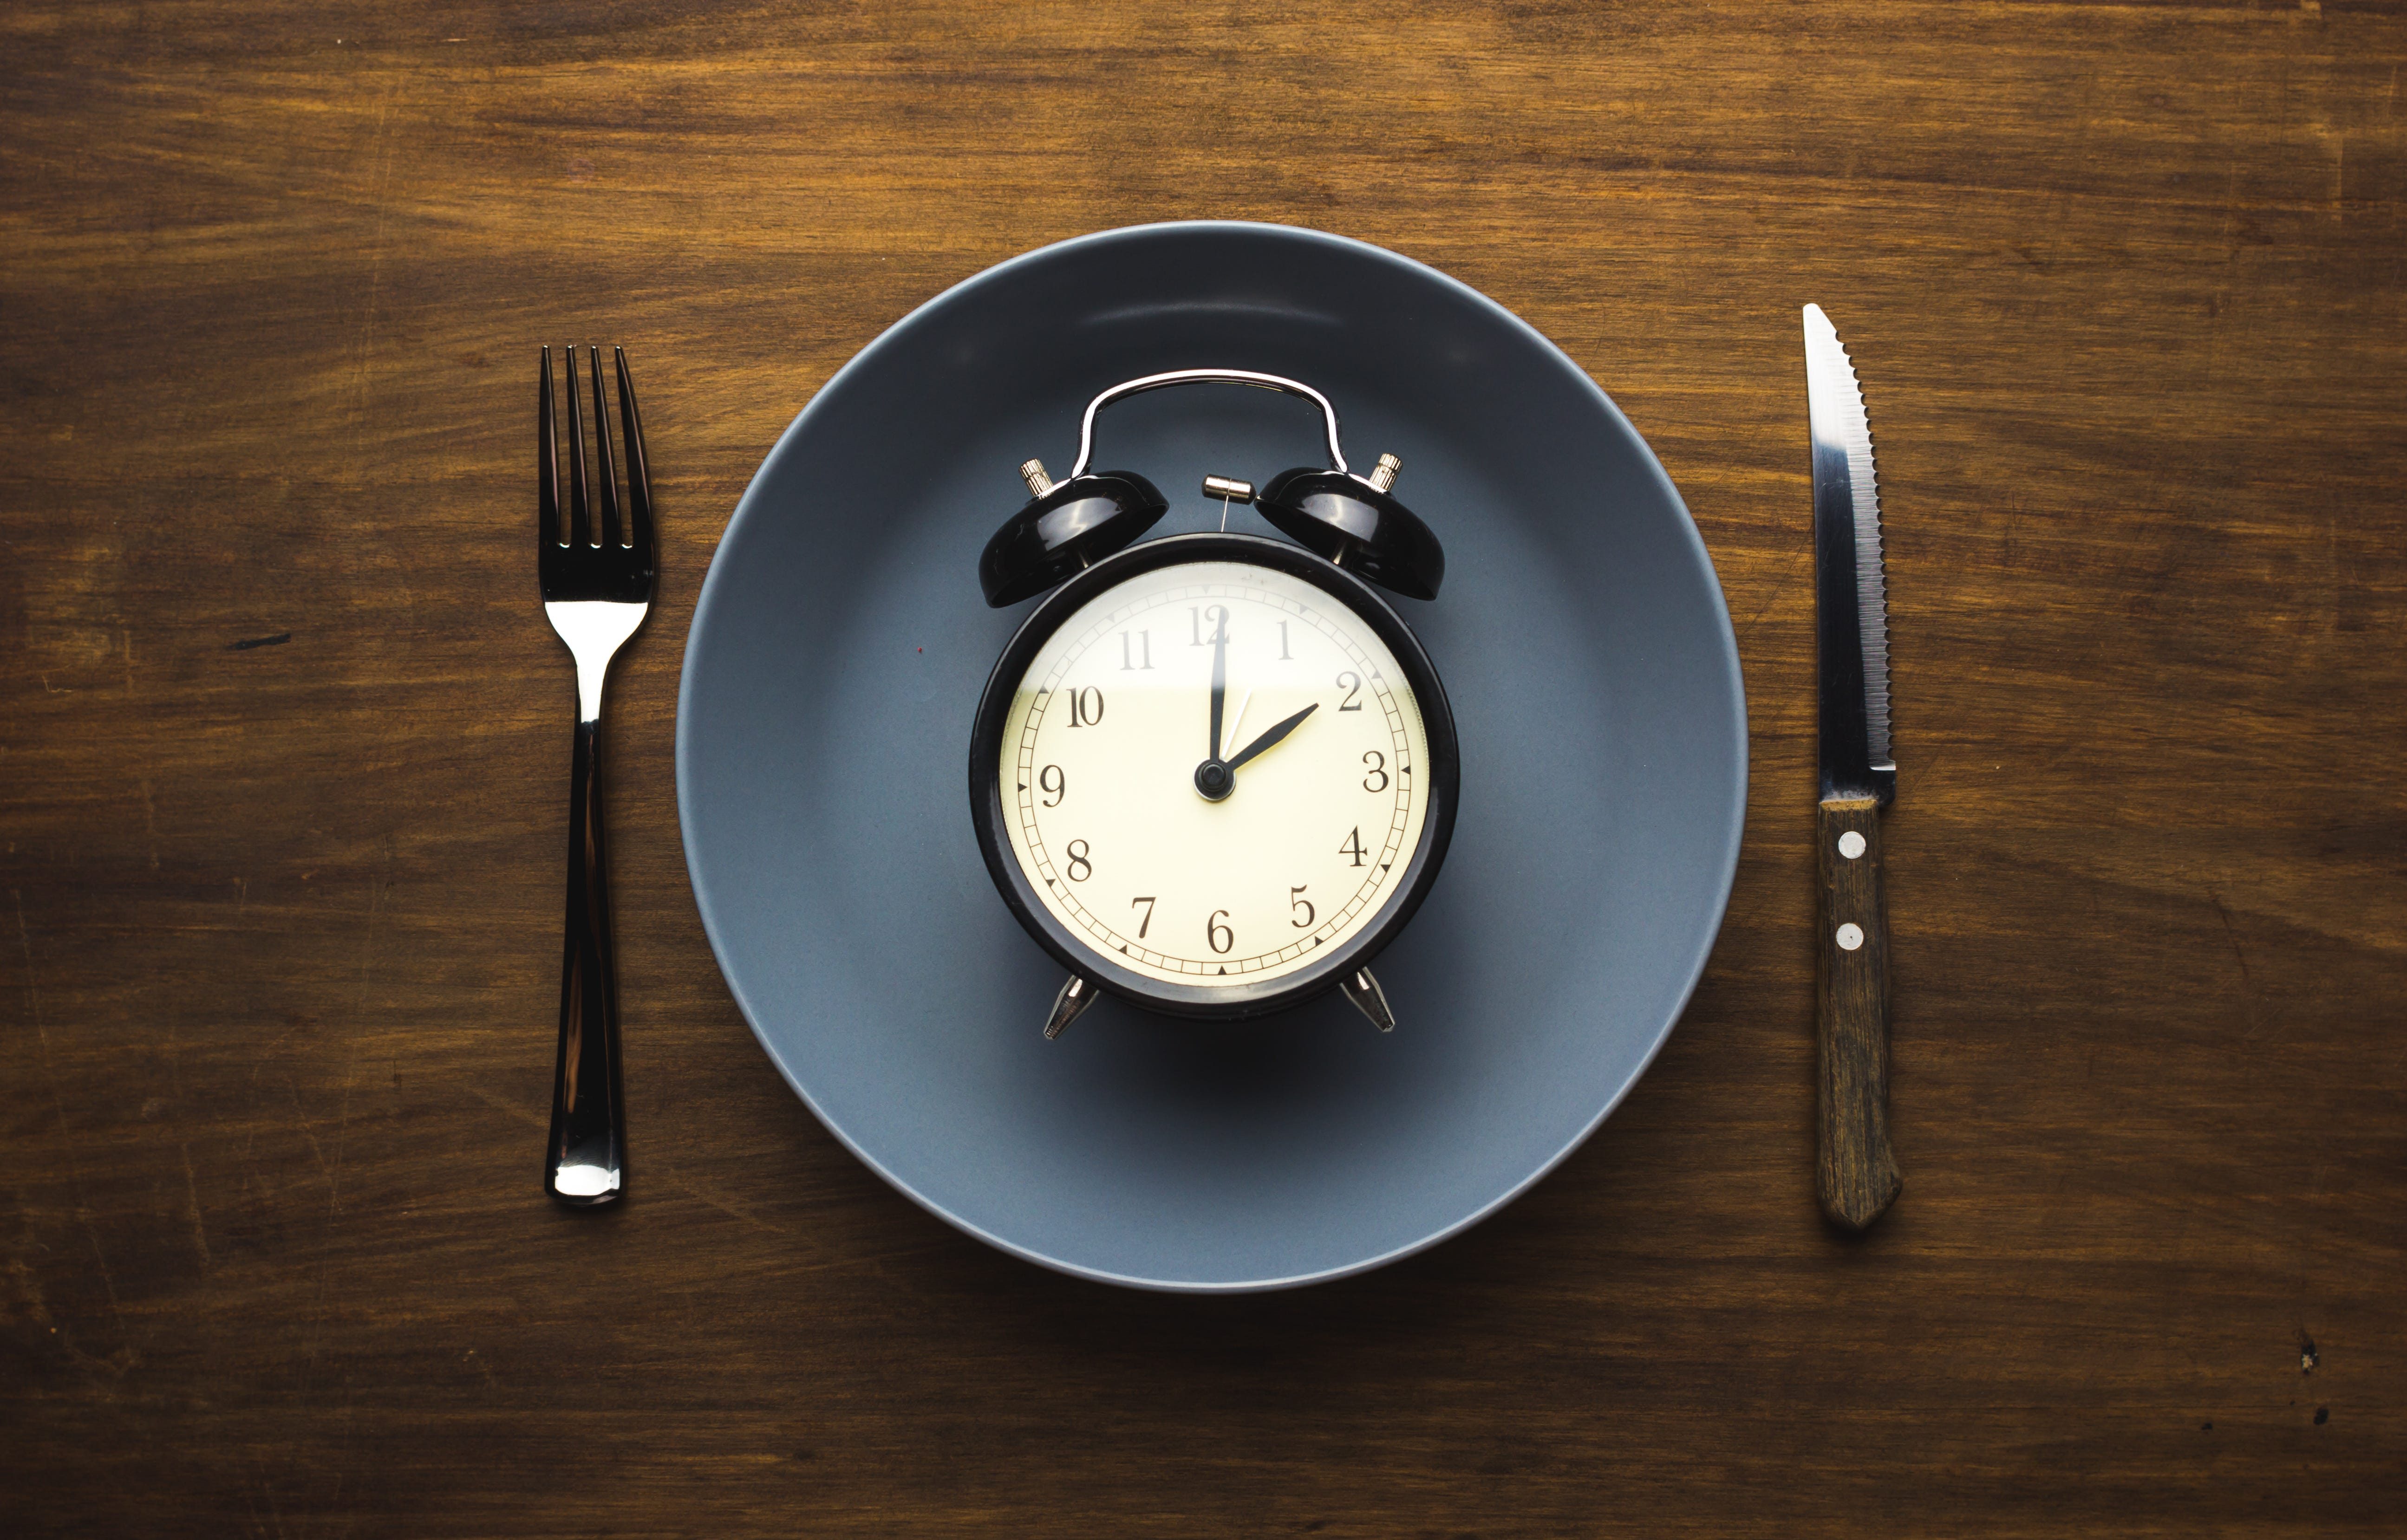 My health was off the rails and I knew it : How intermittent fasting changed everything